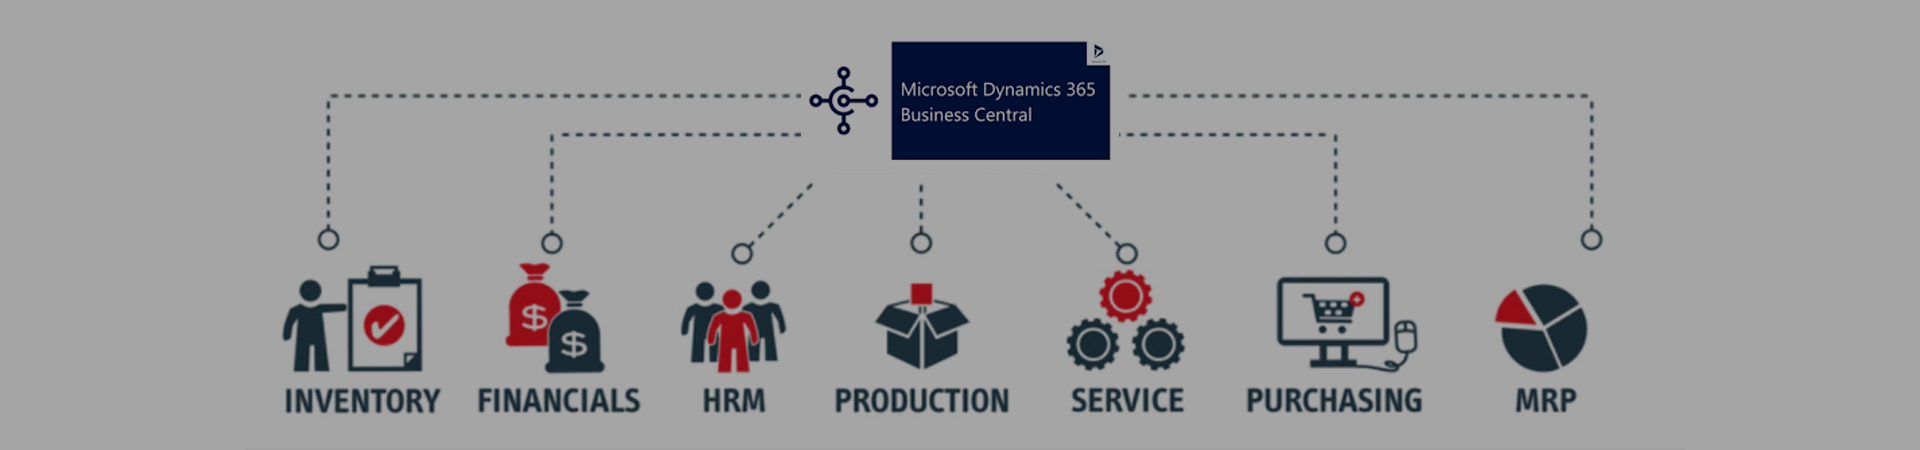 Microsoft dynamics 365 Business CentralEl software ERP más utilizado